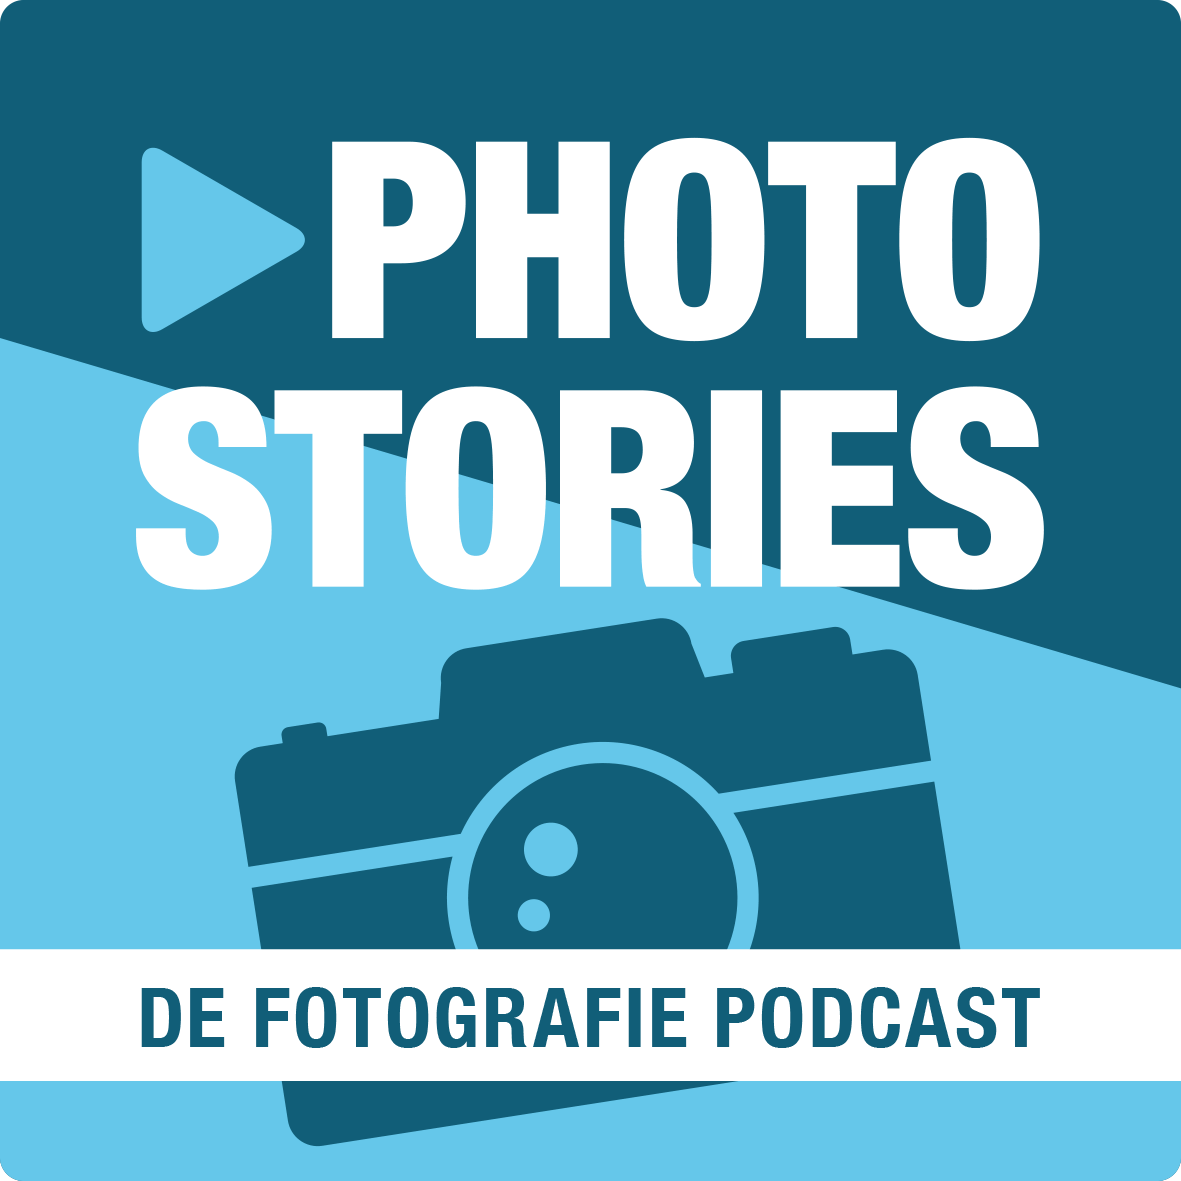 Photo Stories Podcast - De Fotografie Podcast